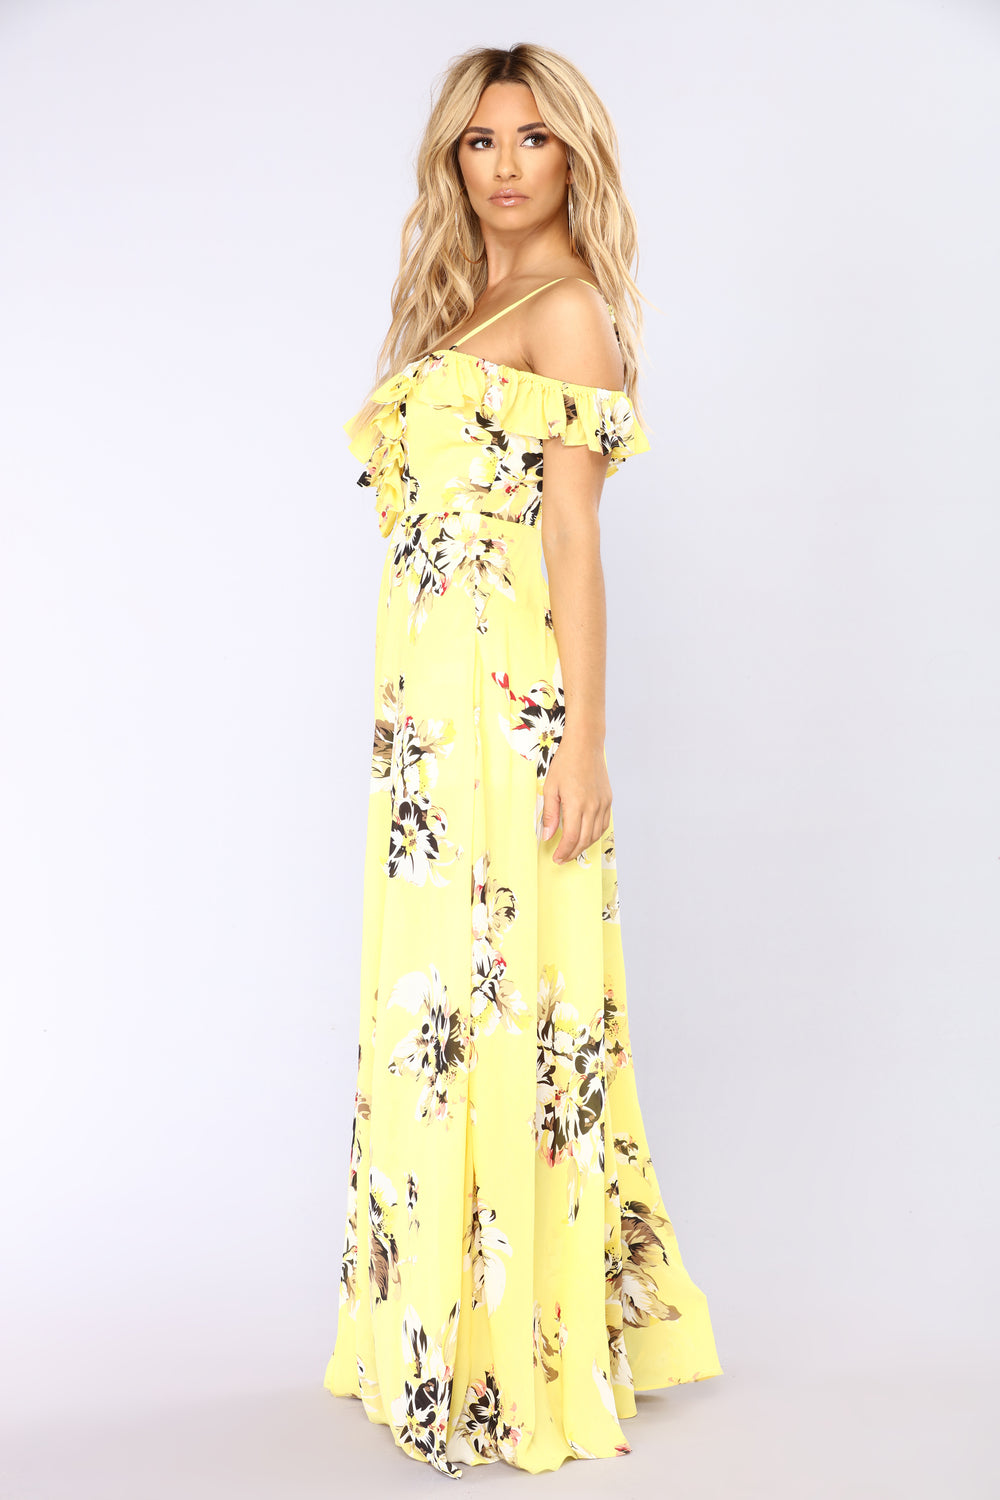 Related: floral maxi dress summer dress floral dress long floral skirt vintage floral dress maxi dress floral blouse beach dress floral short dress floral mini dress. Include description. Categories. All. Clothing, Shoes & Accessories; Women's Clothing. Buy It Now. Item Location. see all. Default.